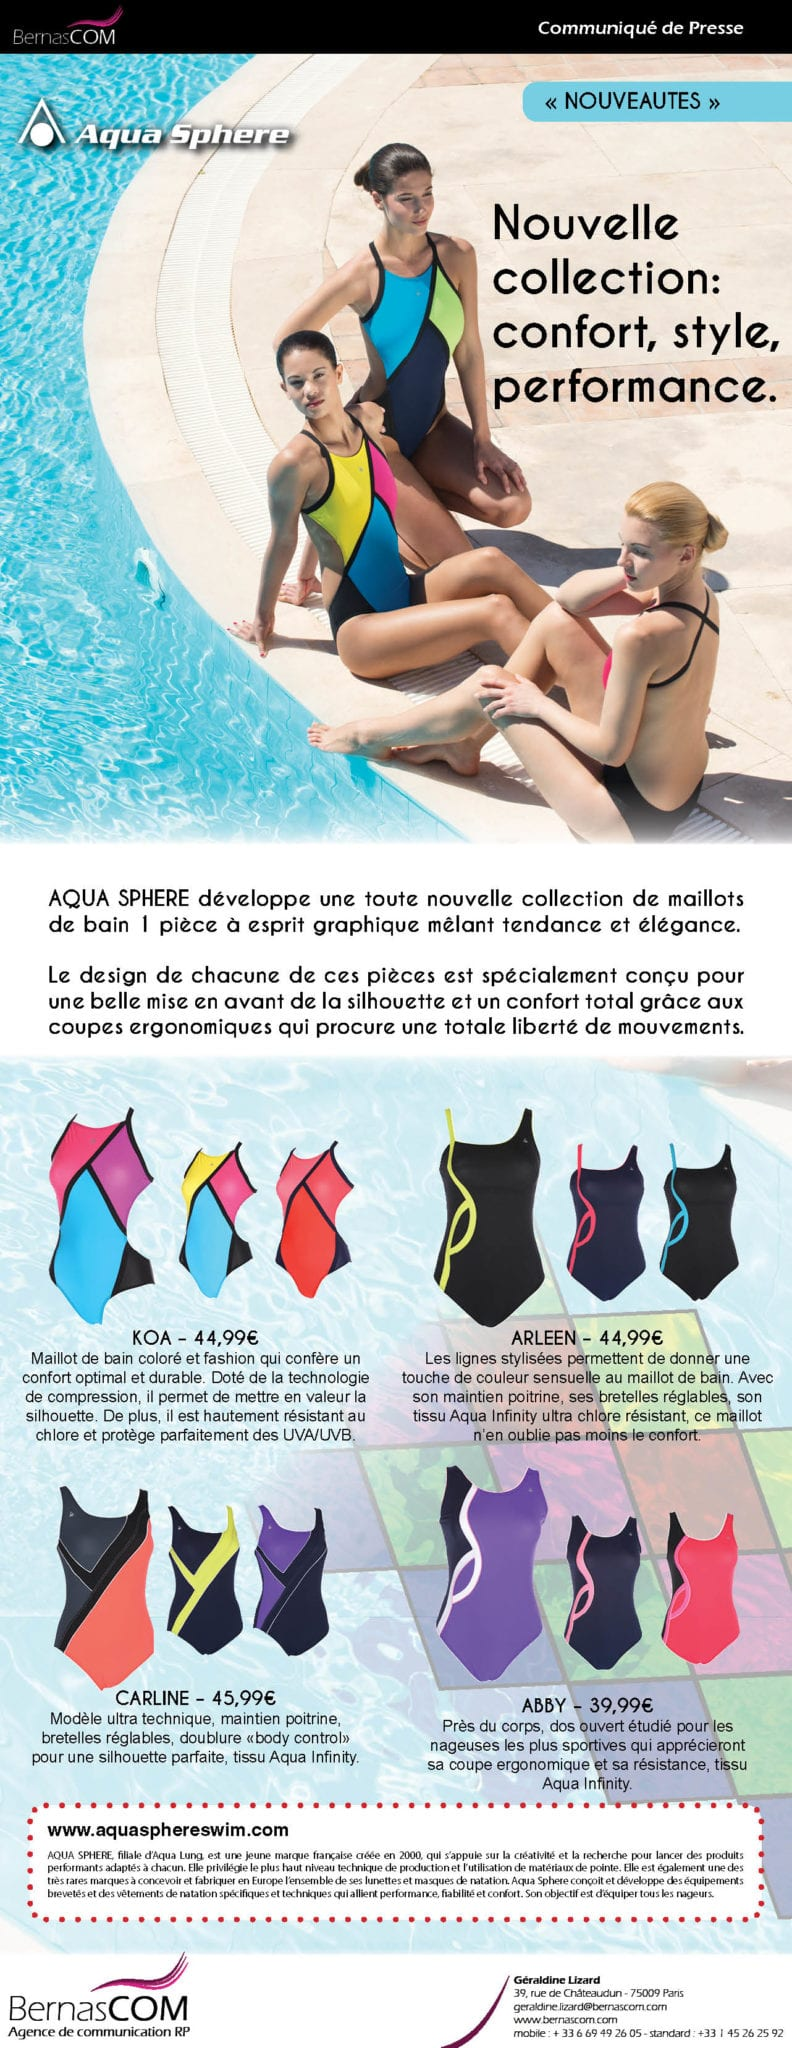 AQS_CP_Maillots-Bain-Graphique